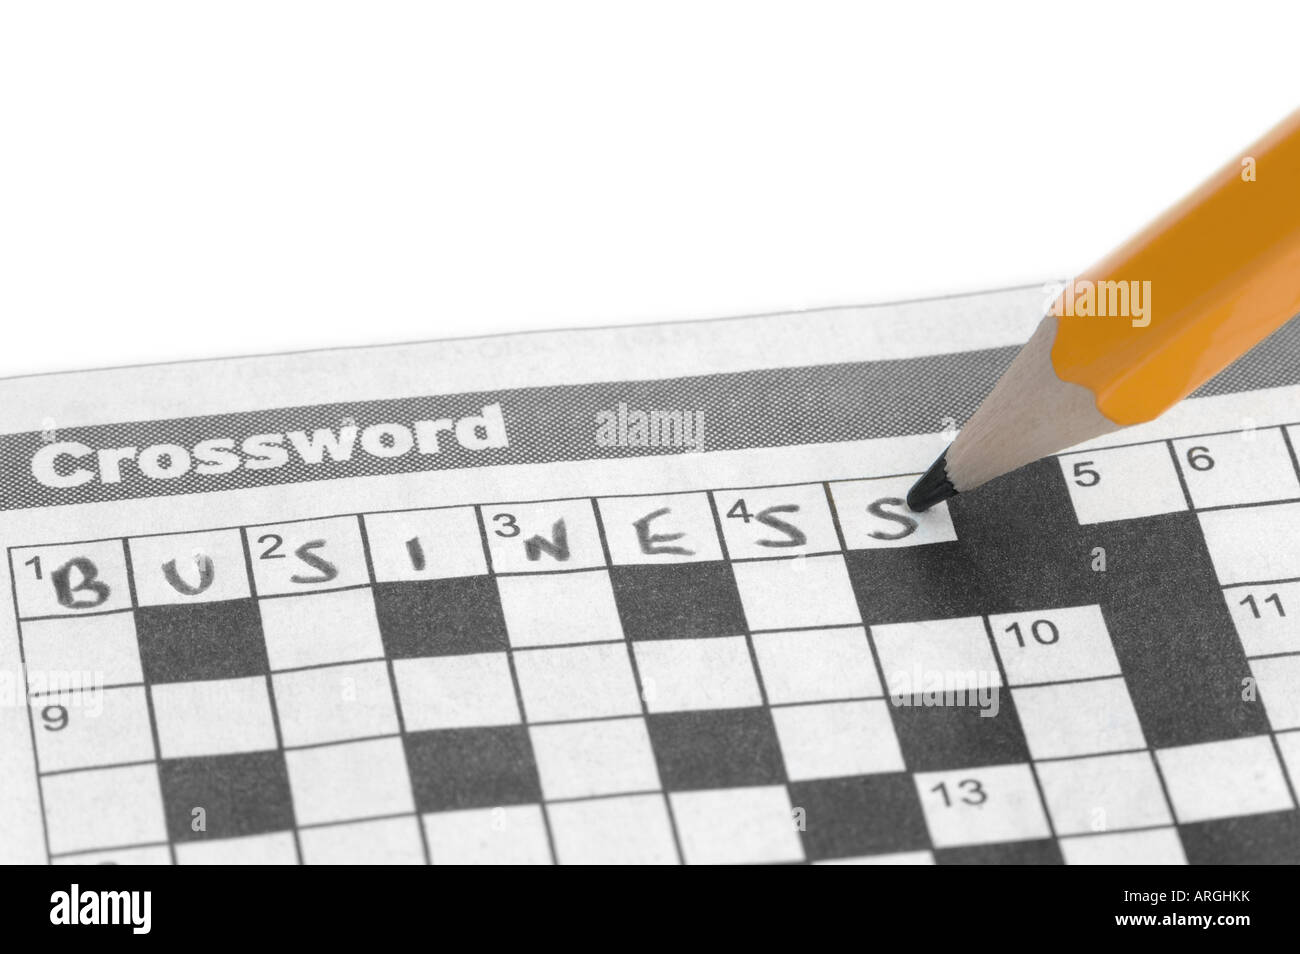 Business written on a crossword with a yellow pencil - Stock Image